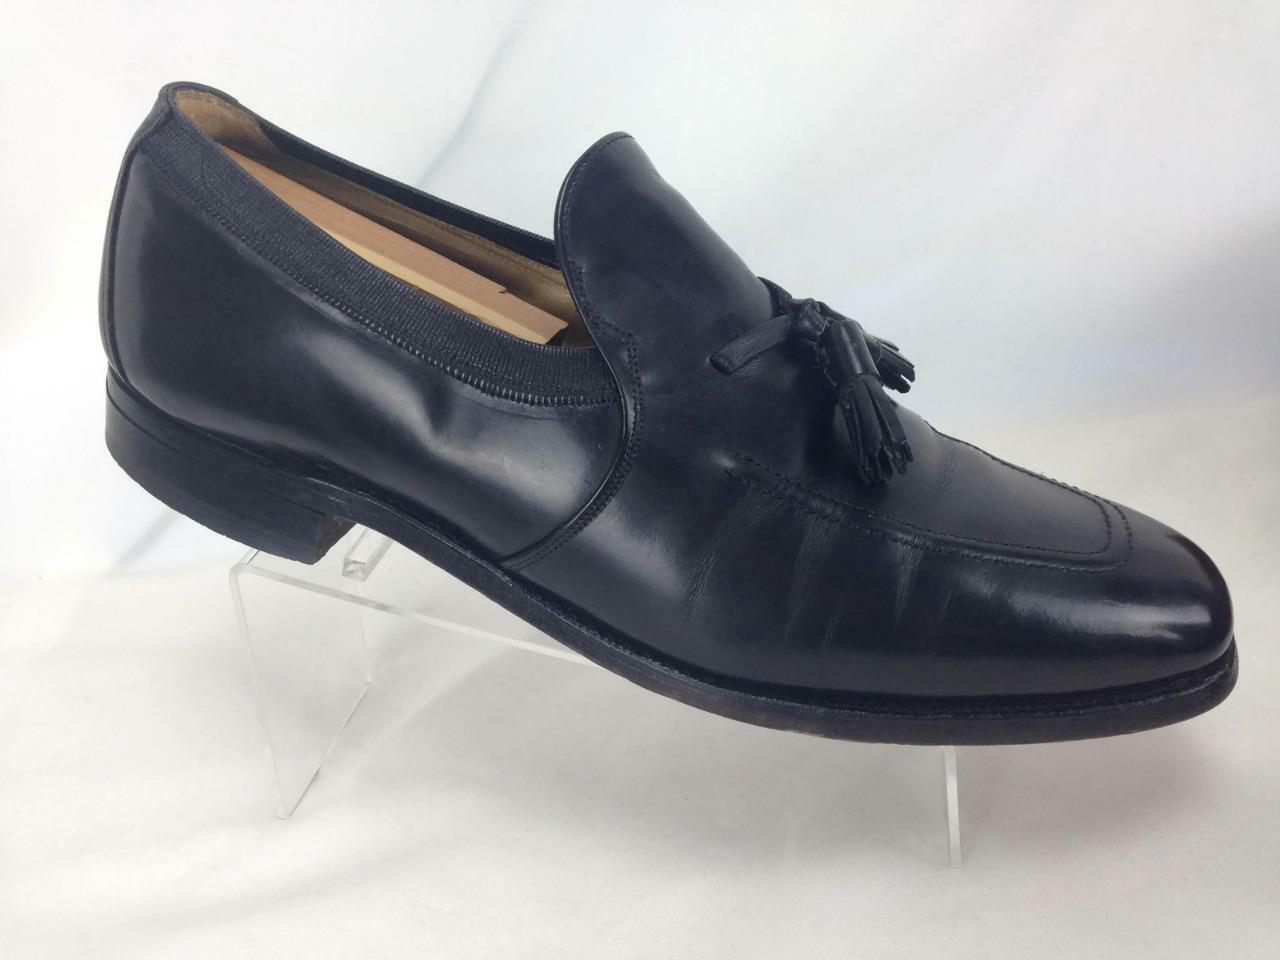 Johnston & Murphy Shoes Men's Black Leather Dress Shoes Murphy Sz 10 Tassel Loafers  #B499 abb92a